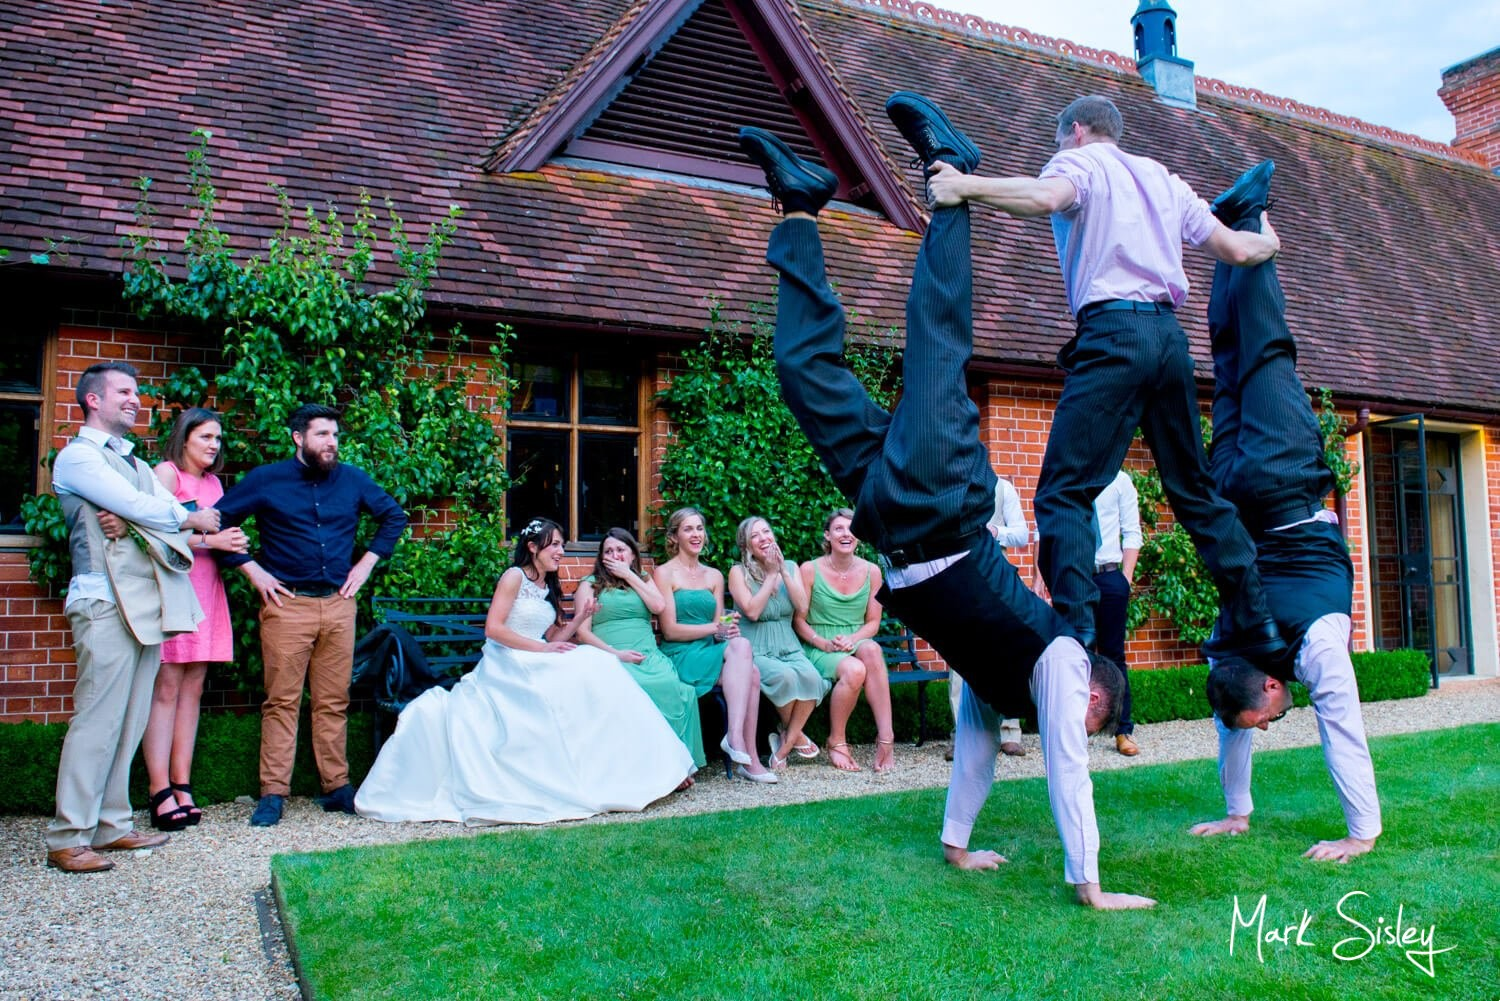 Dairy Waddedon wedding photographs - Acrobats on the lawn